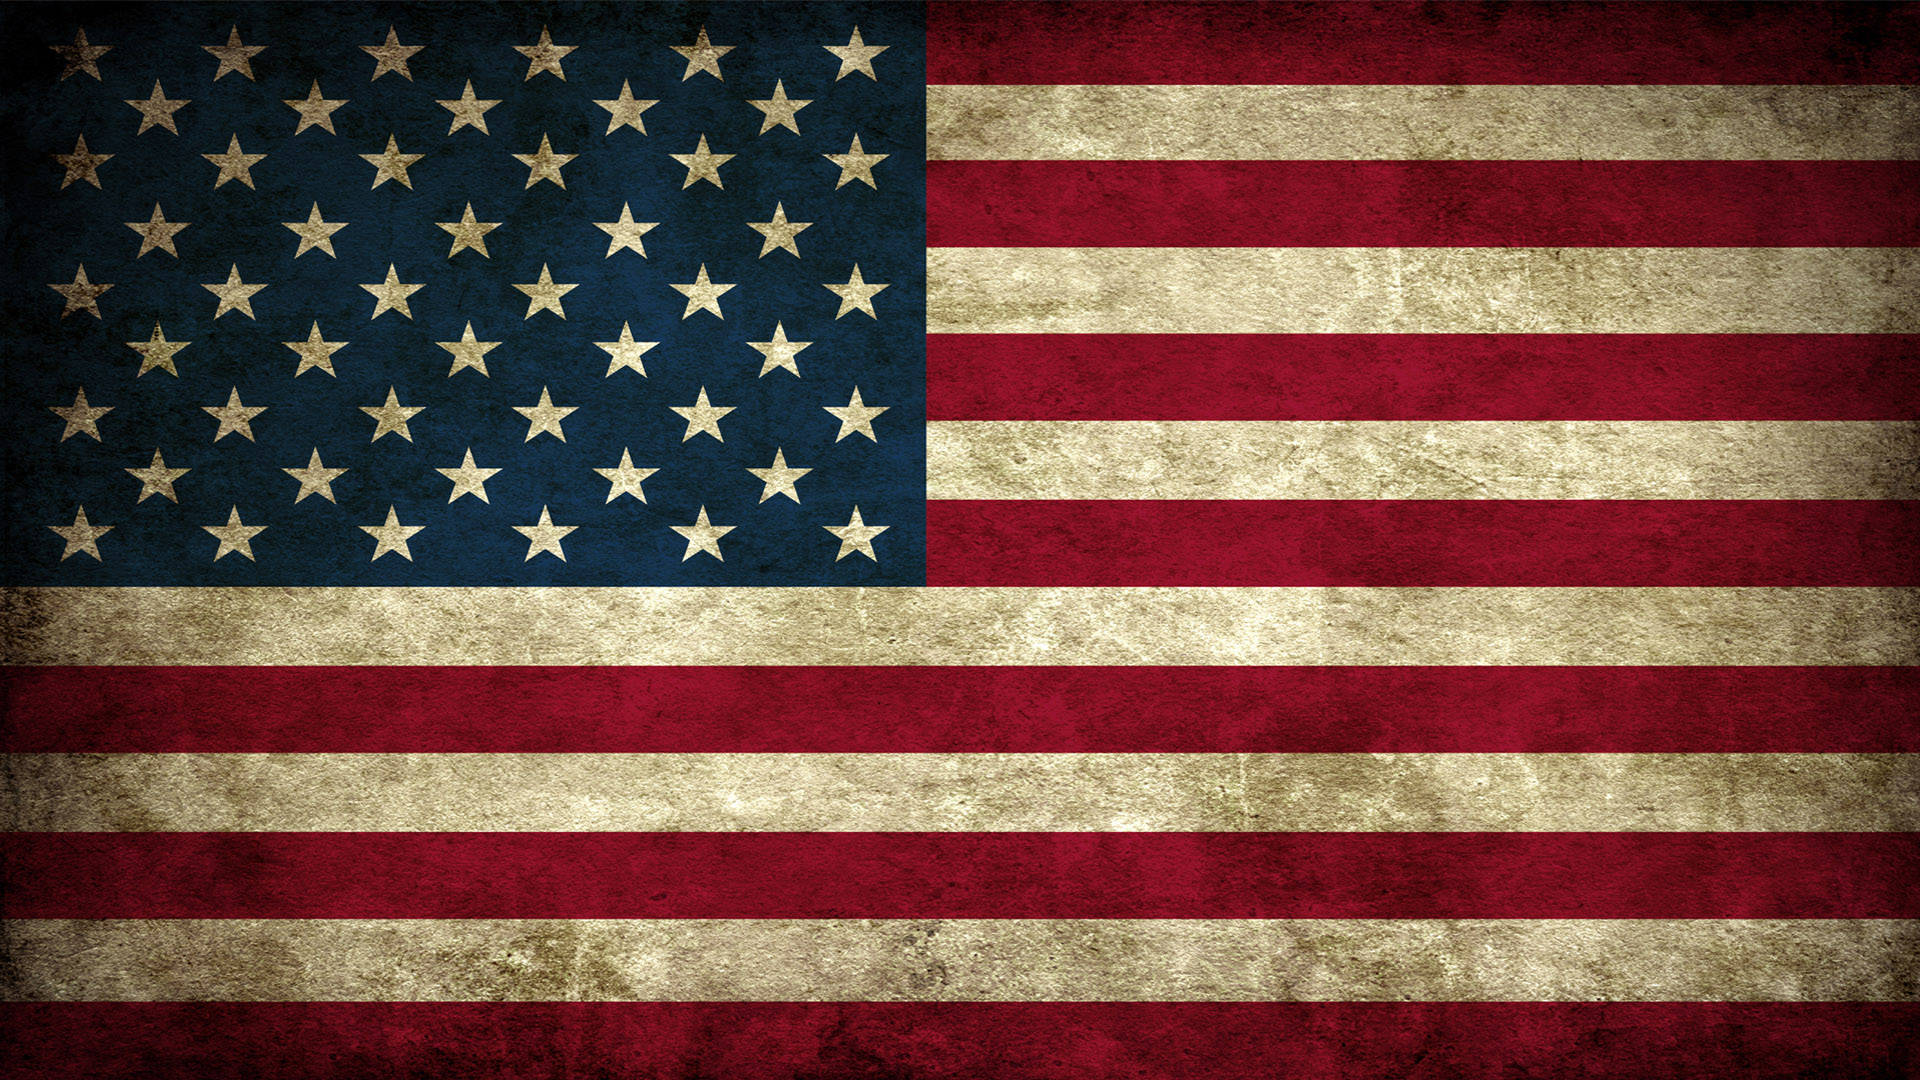 flag wallpaper american old wallpapers city 1920x1080 1920x1080